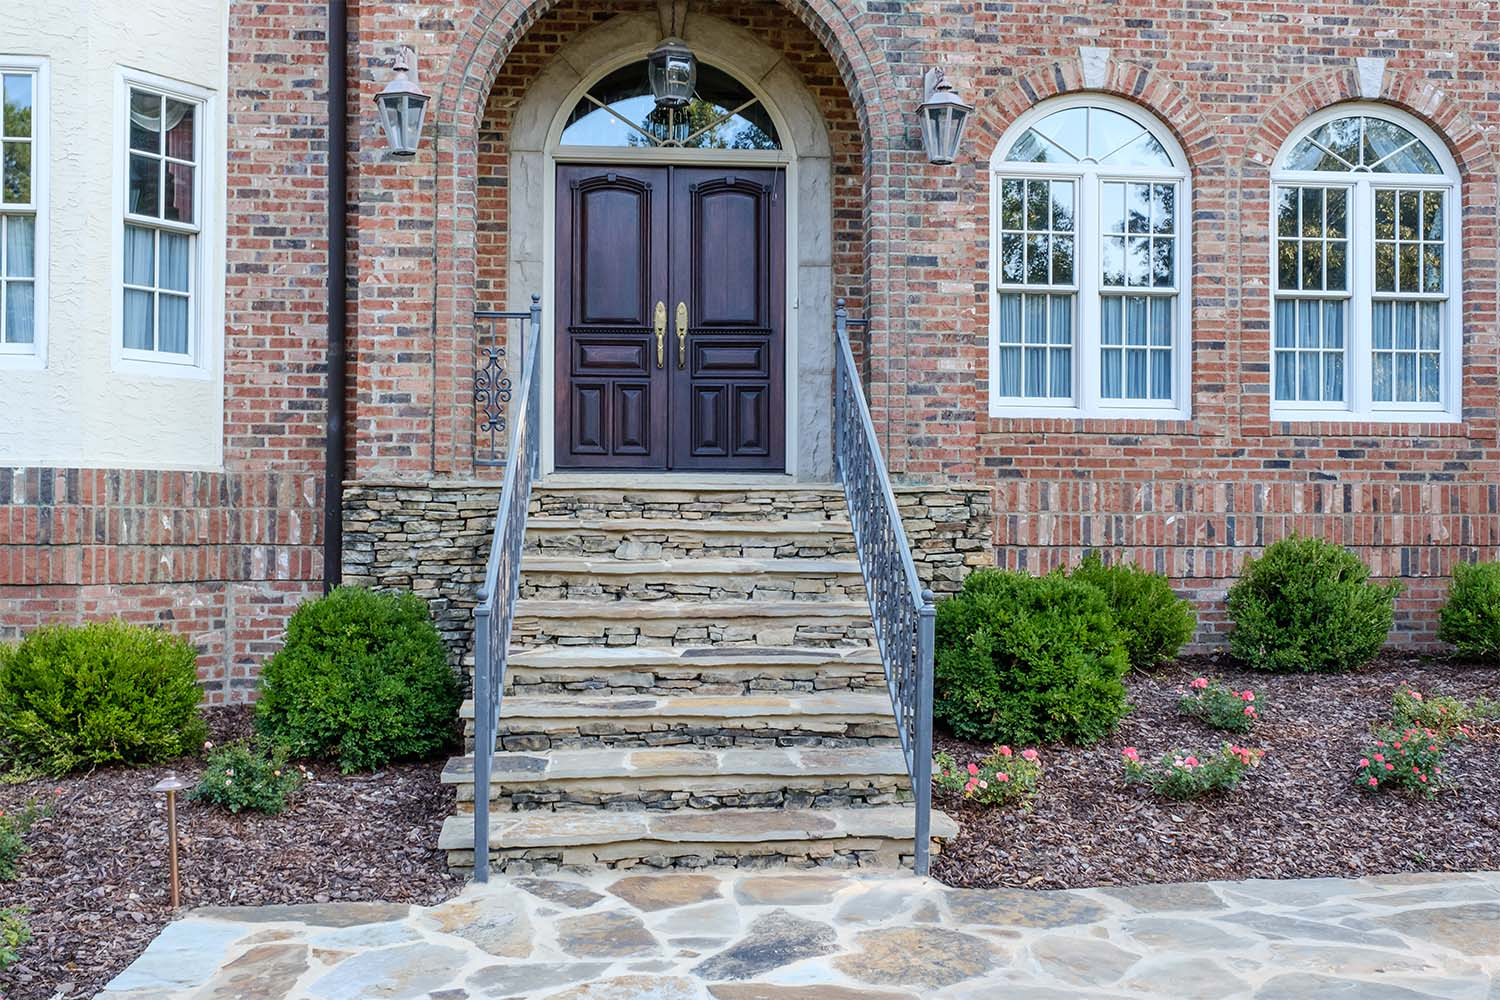 Hardscapes - Patios, walkways, and outdoor living options